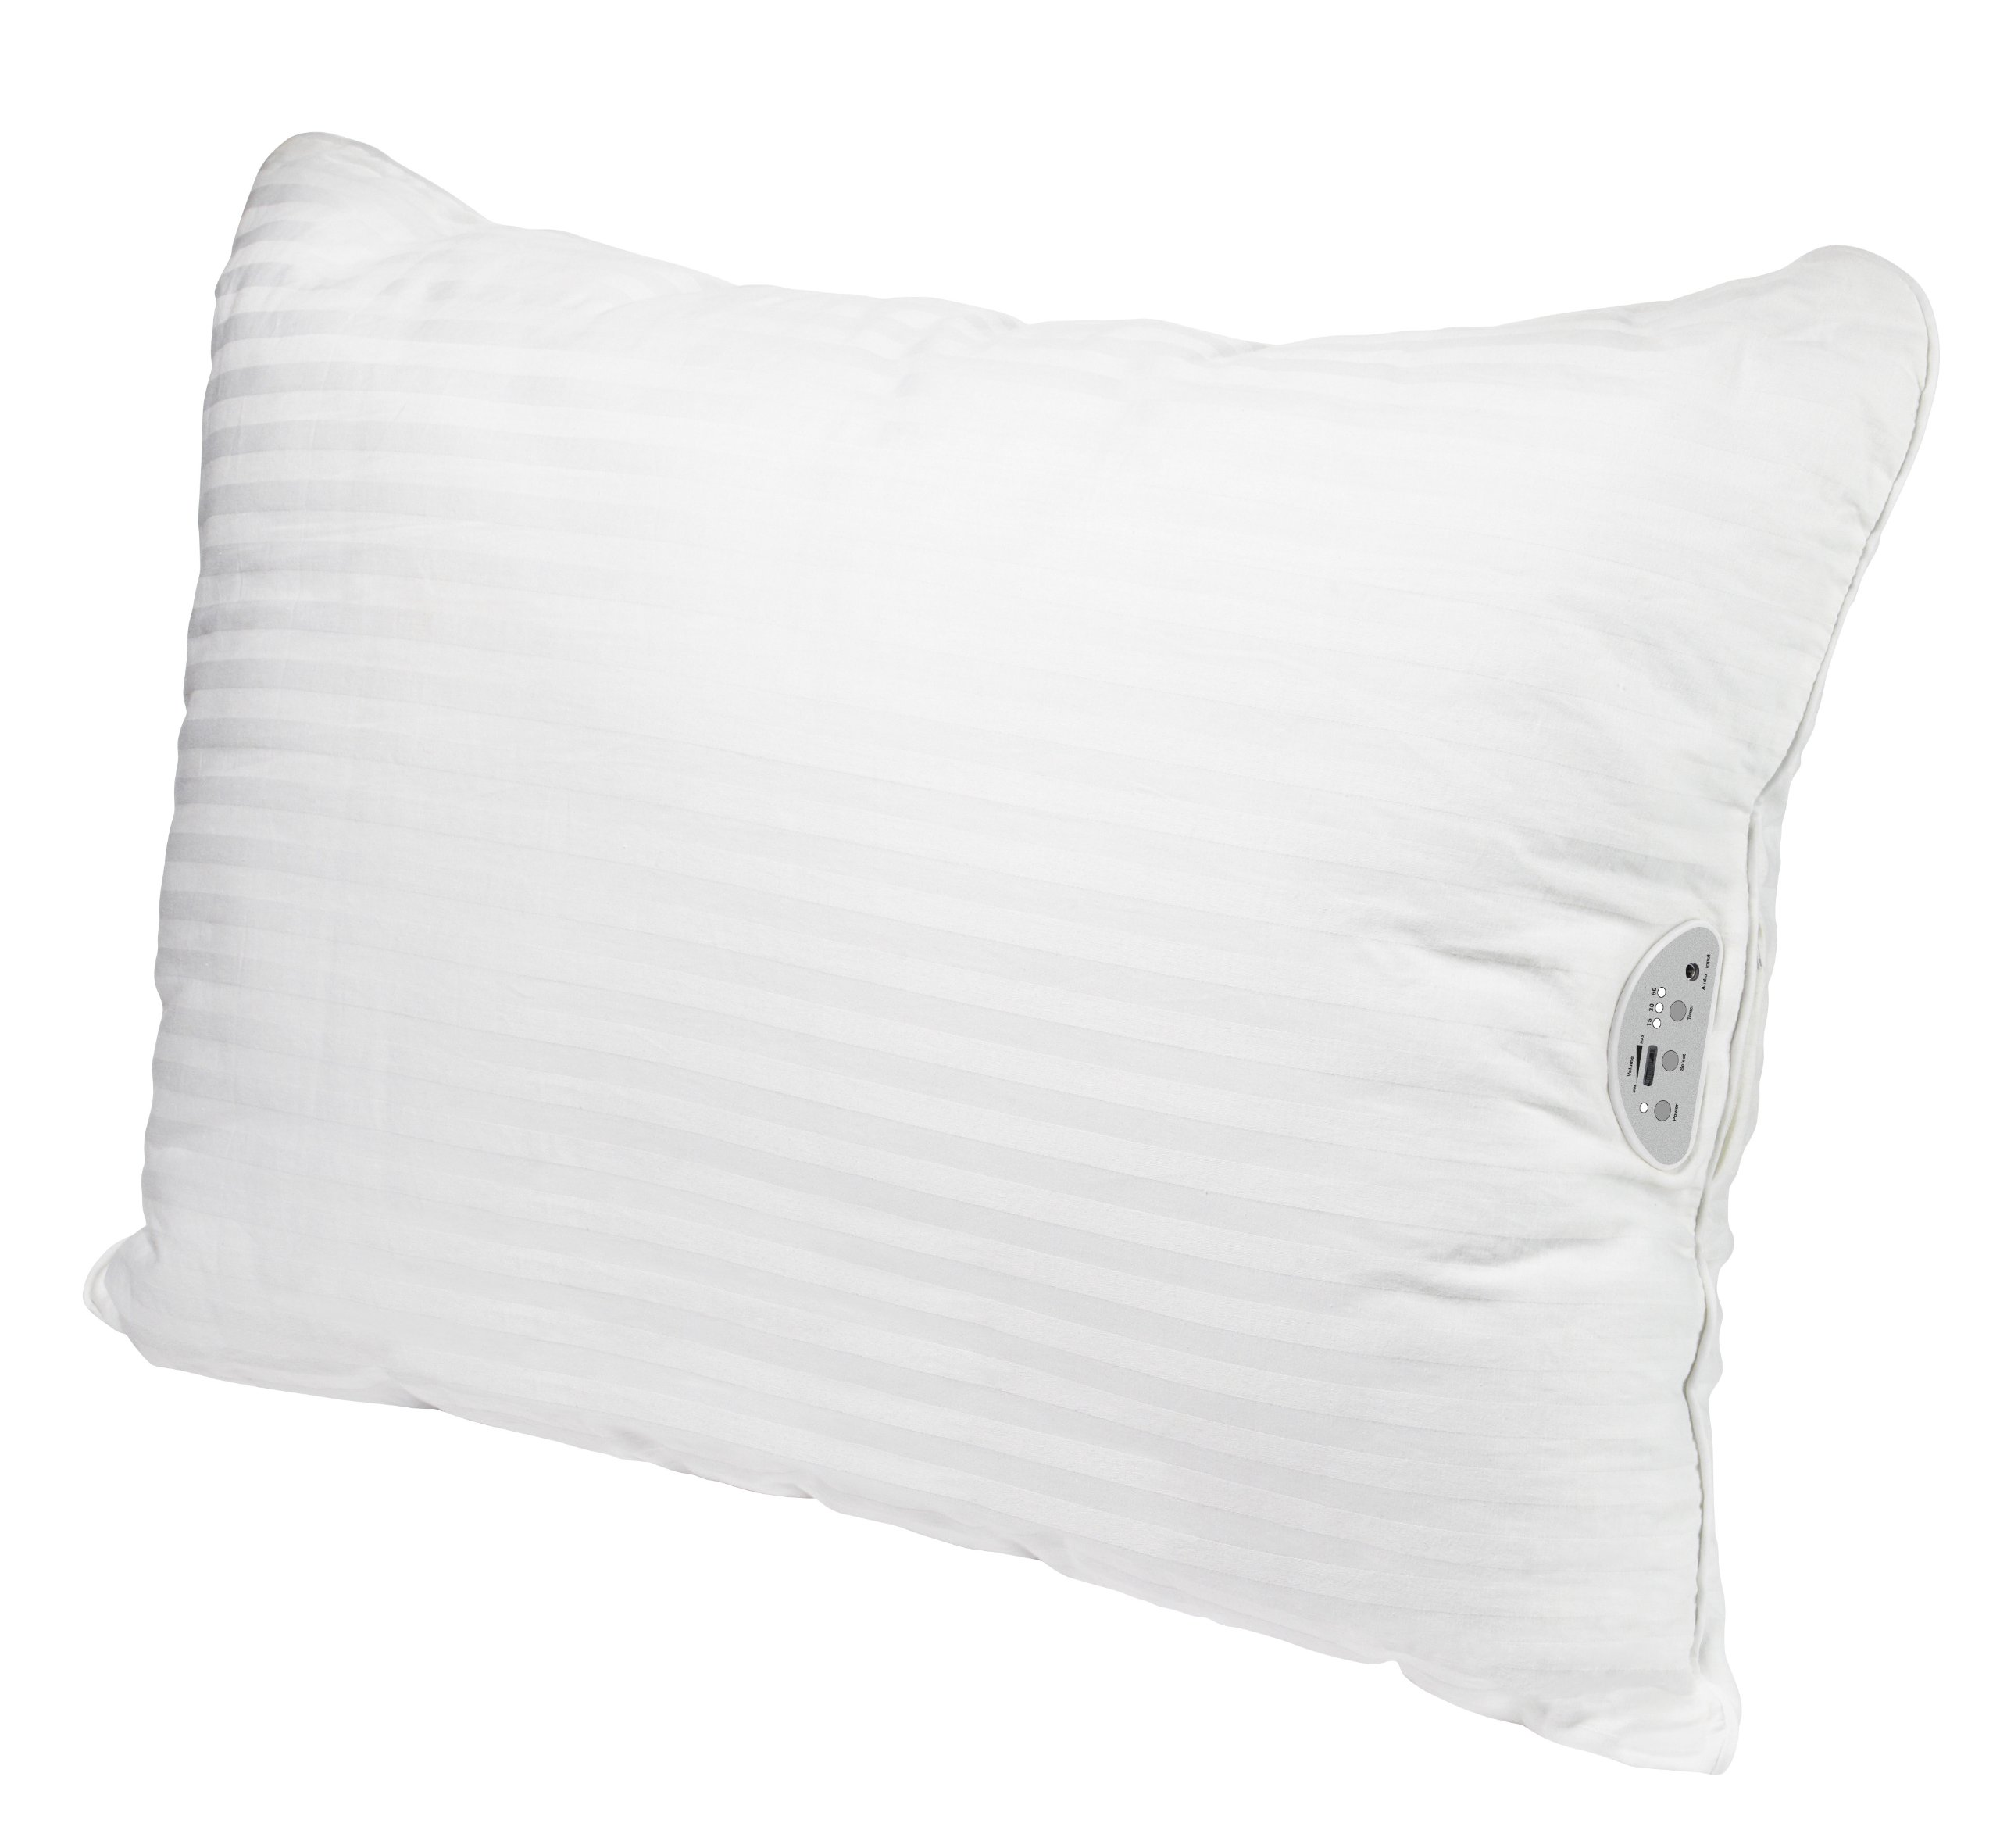 Conair Sound Therapy Pillow by Conair